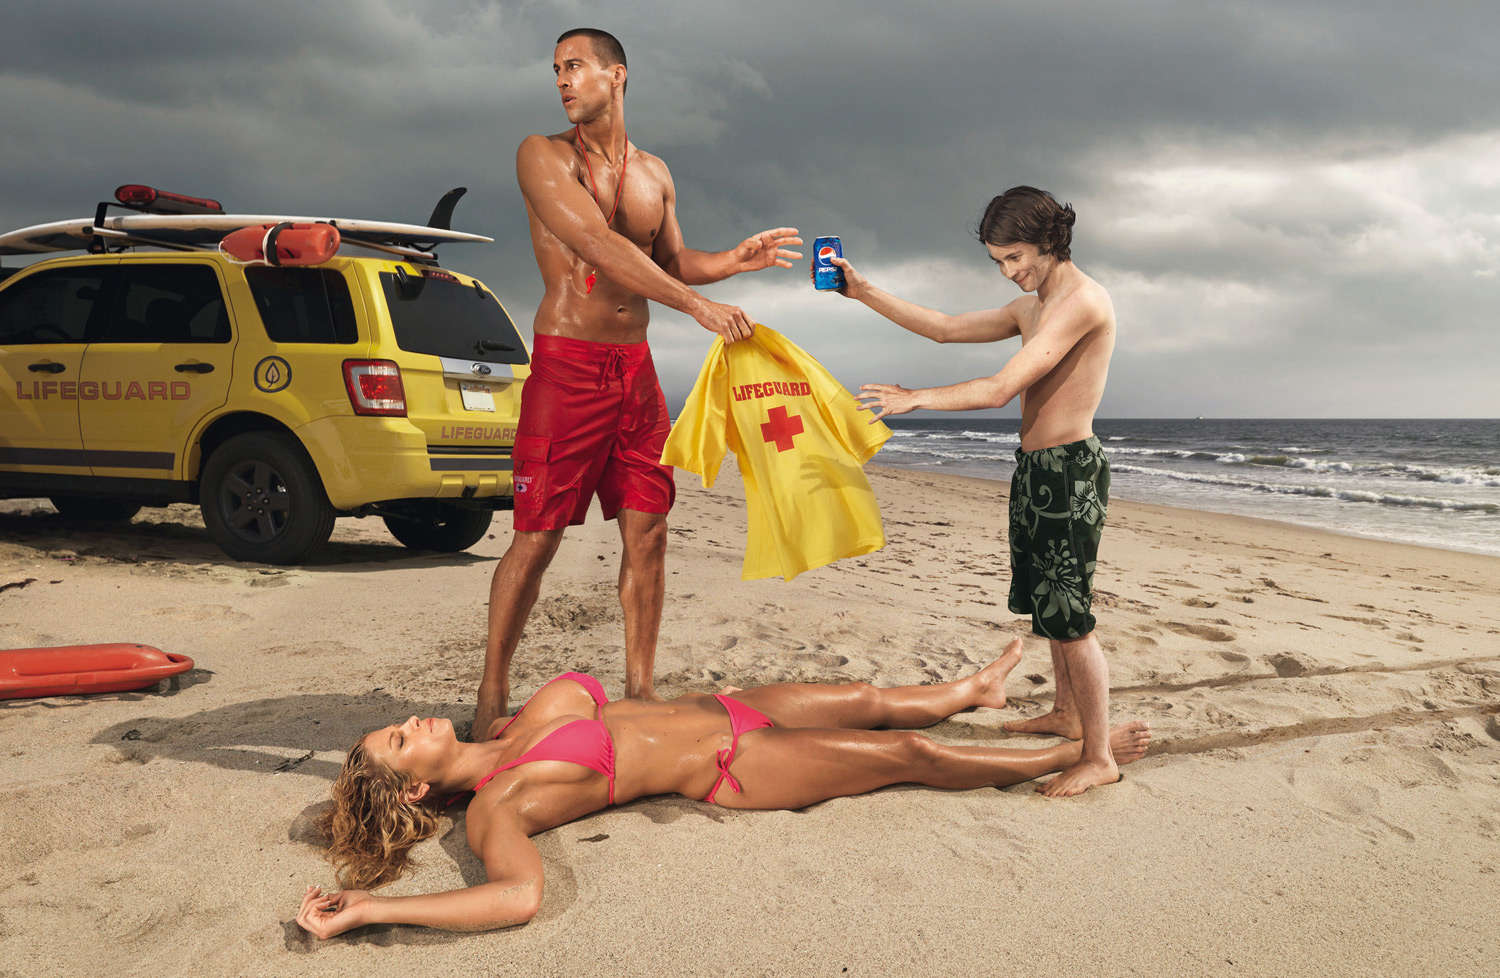 french-kiss-pepsi-lifeguard-funny47